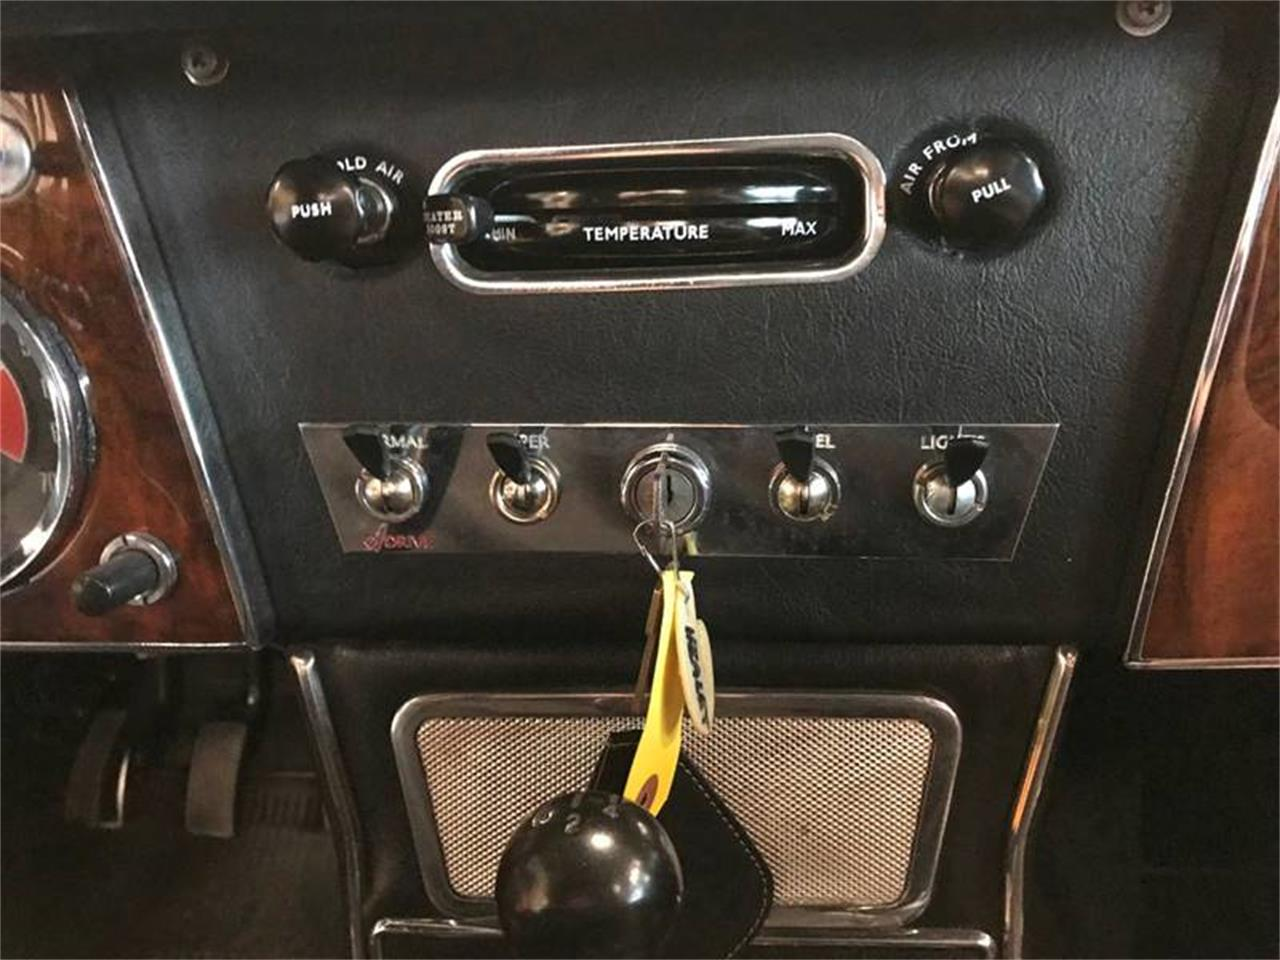 1967 Austin-Healey 3000 Mark III BJ8 for sale in St Louis, MO – photo 21